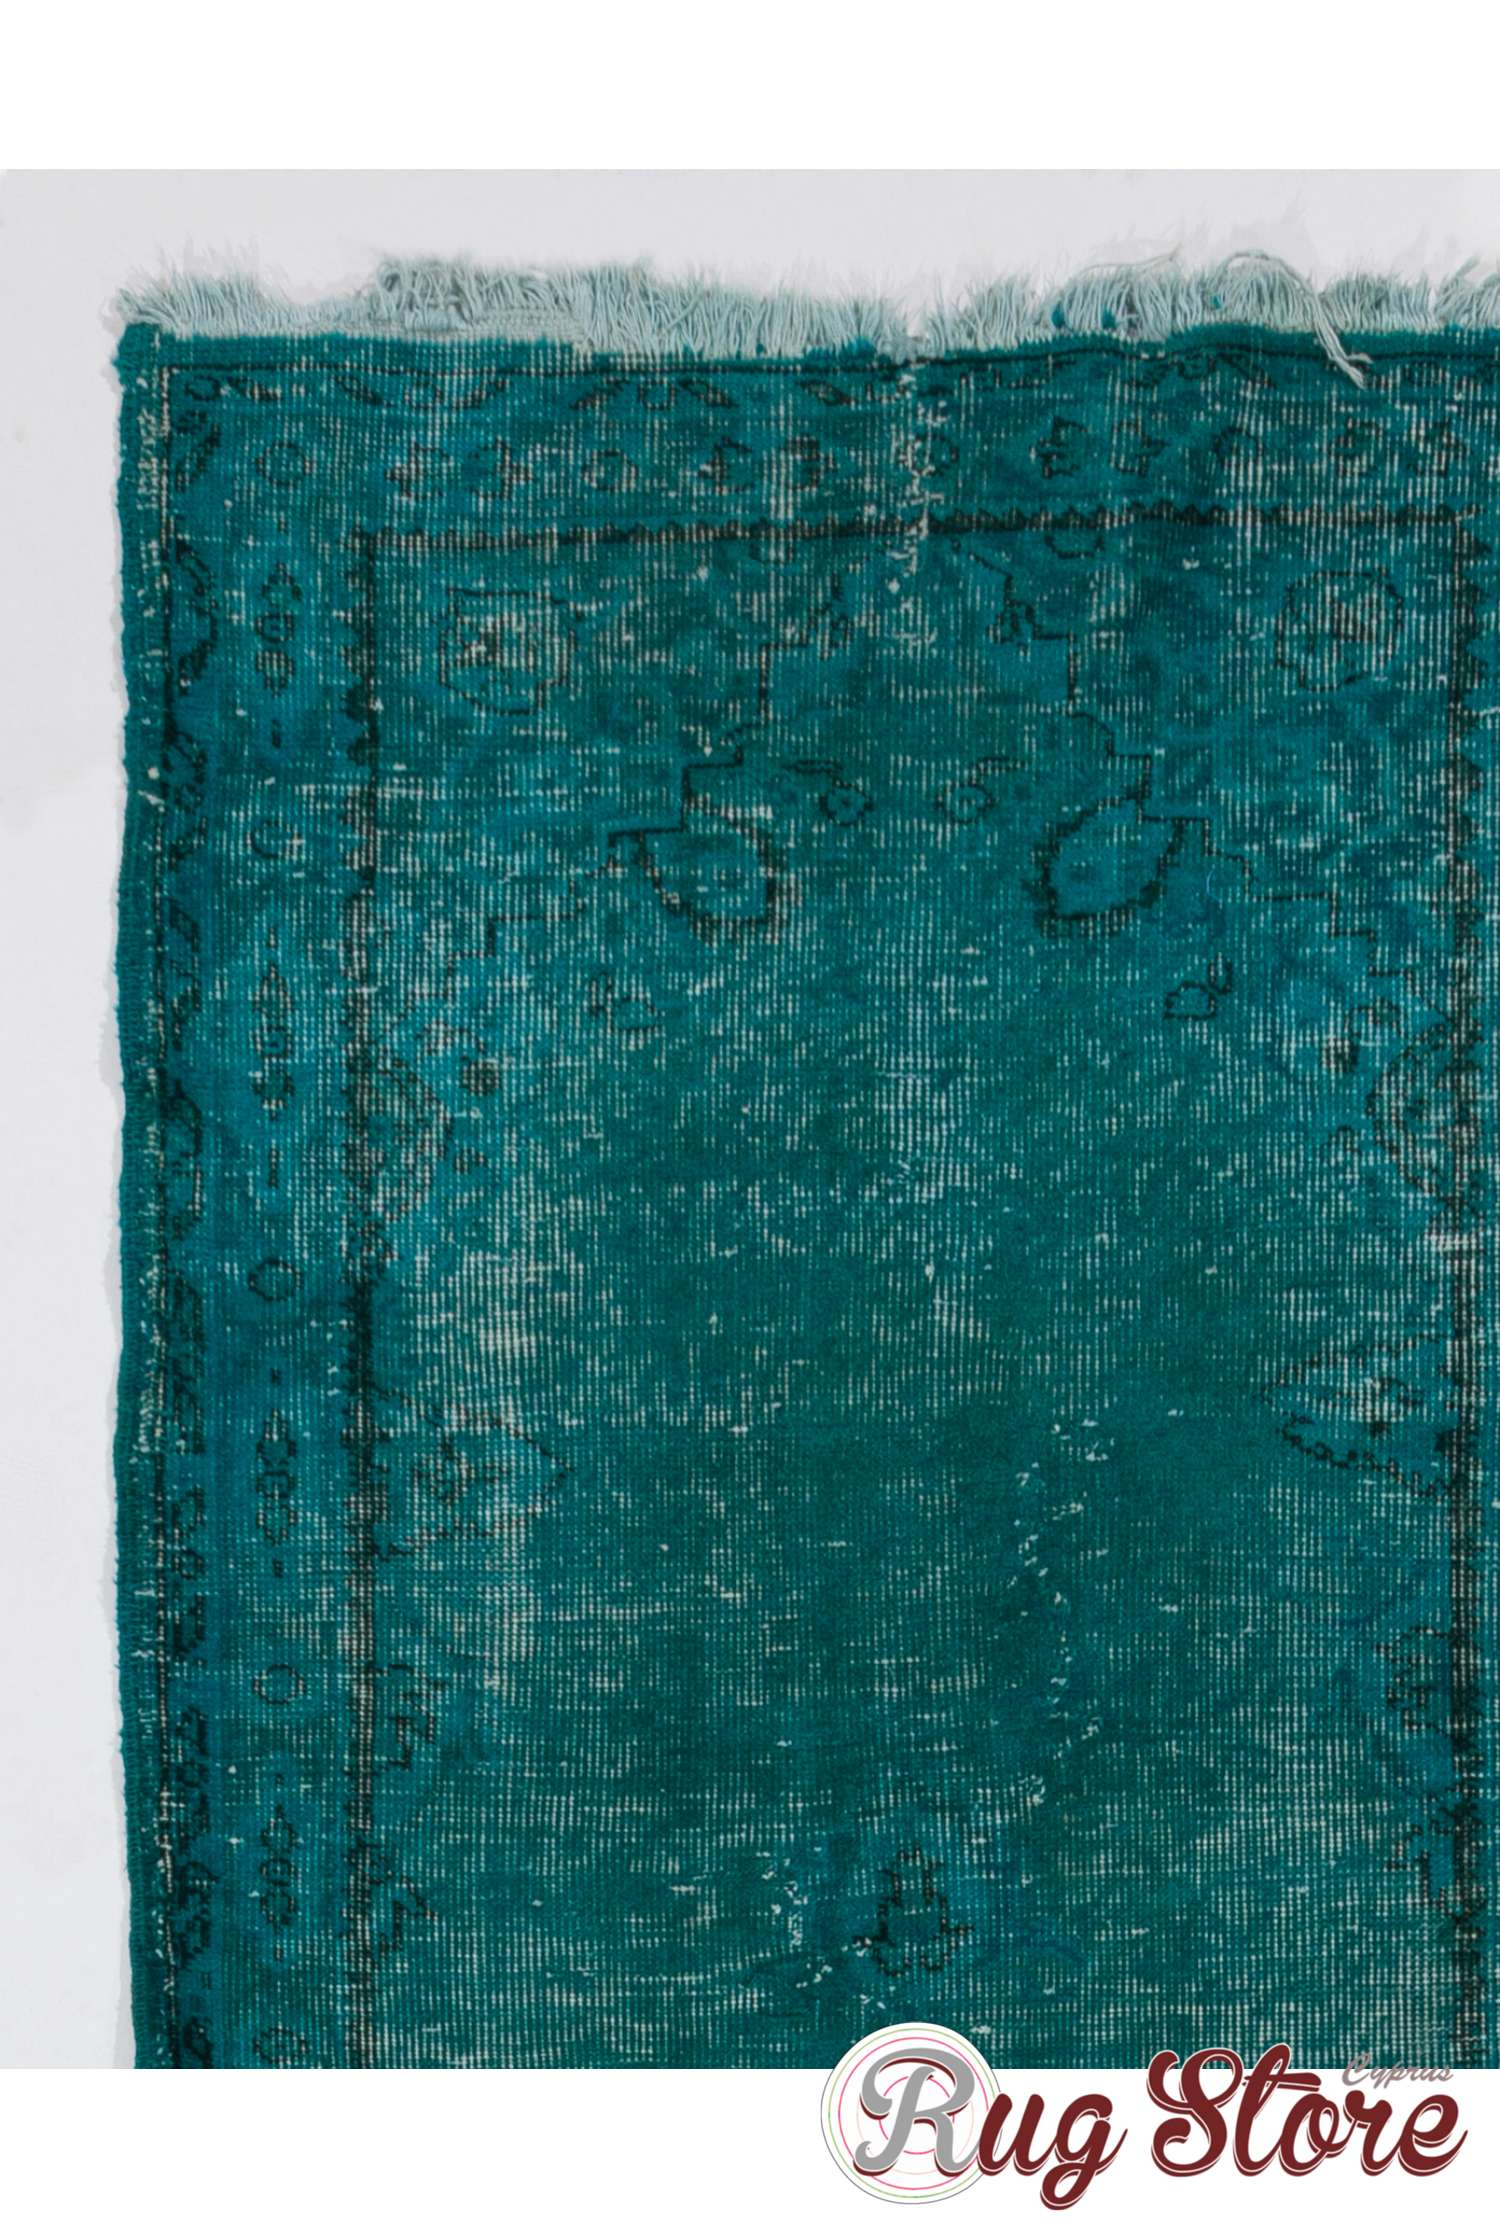 Turquoise Runner Rug Turquoise Blue Color Vintage